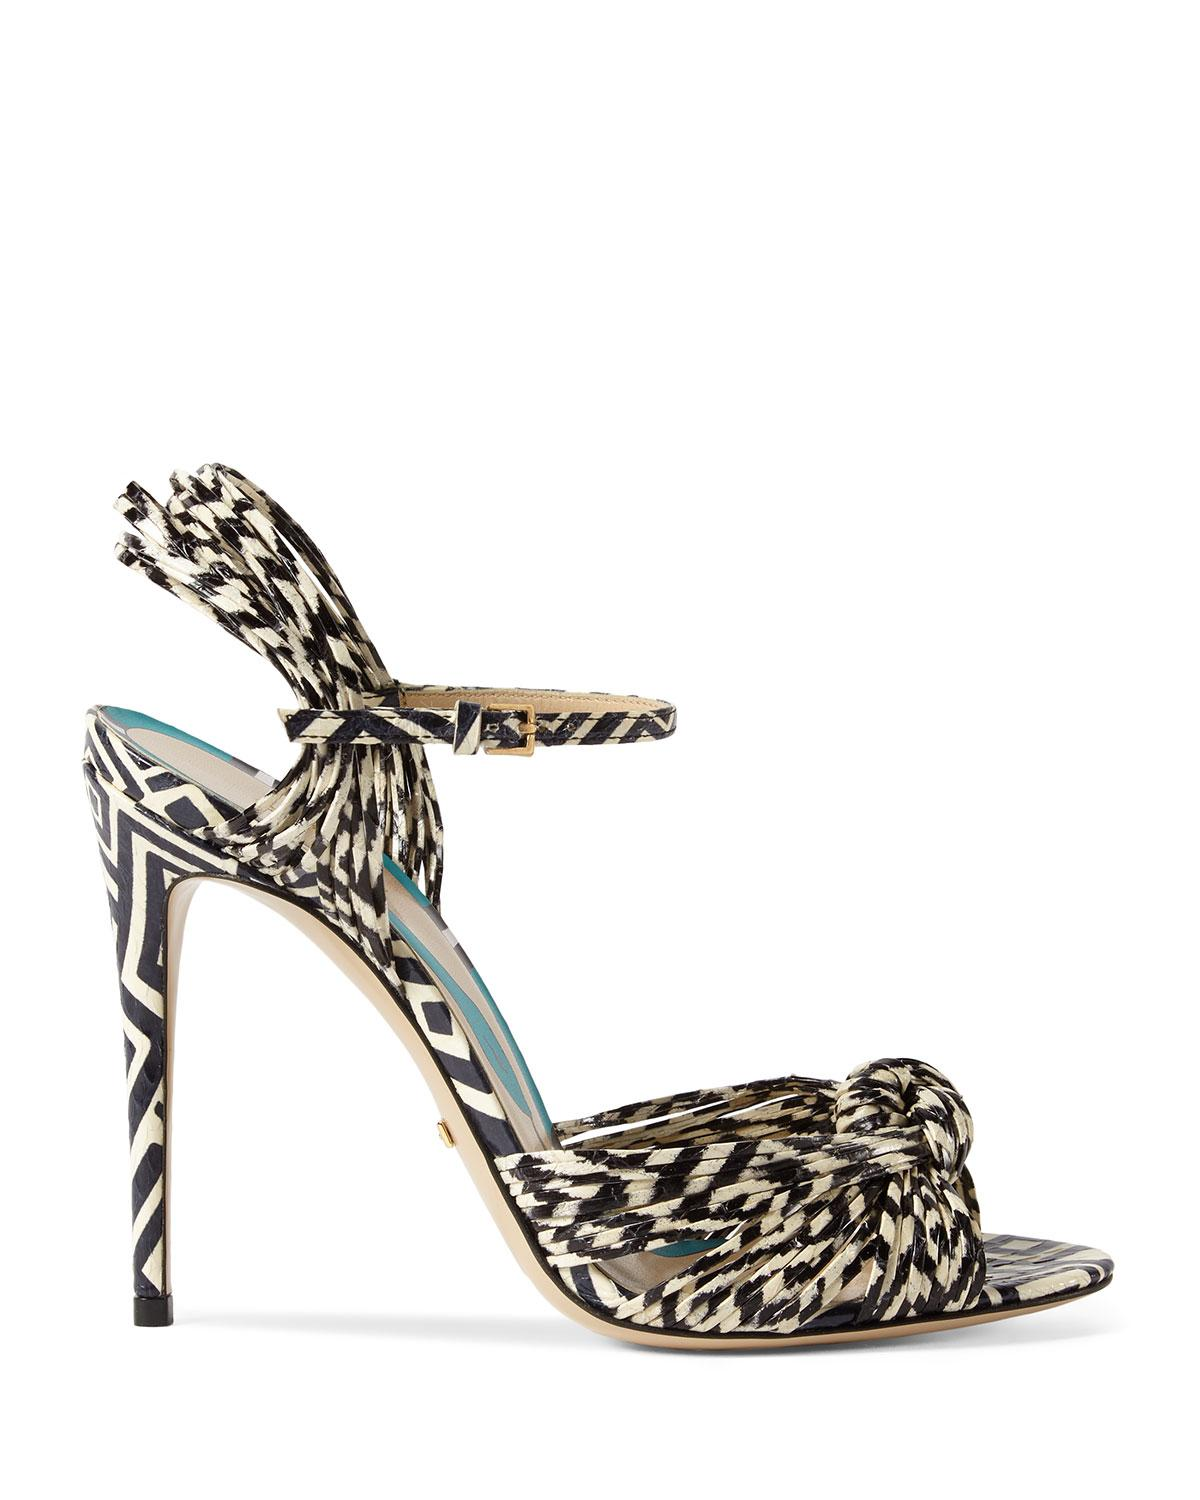 ee25a7950d7 Lyst - Gucci Allie Striped Leather Sandals in Black